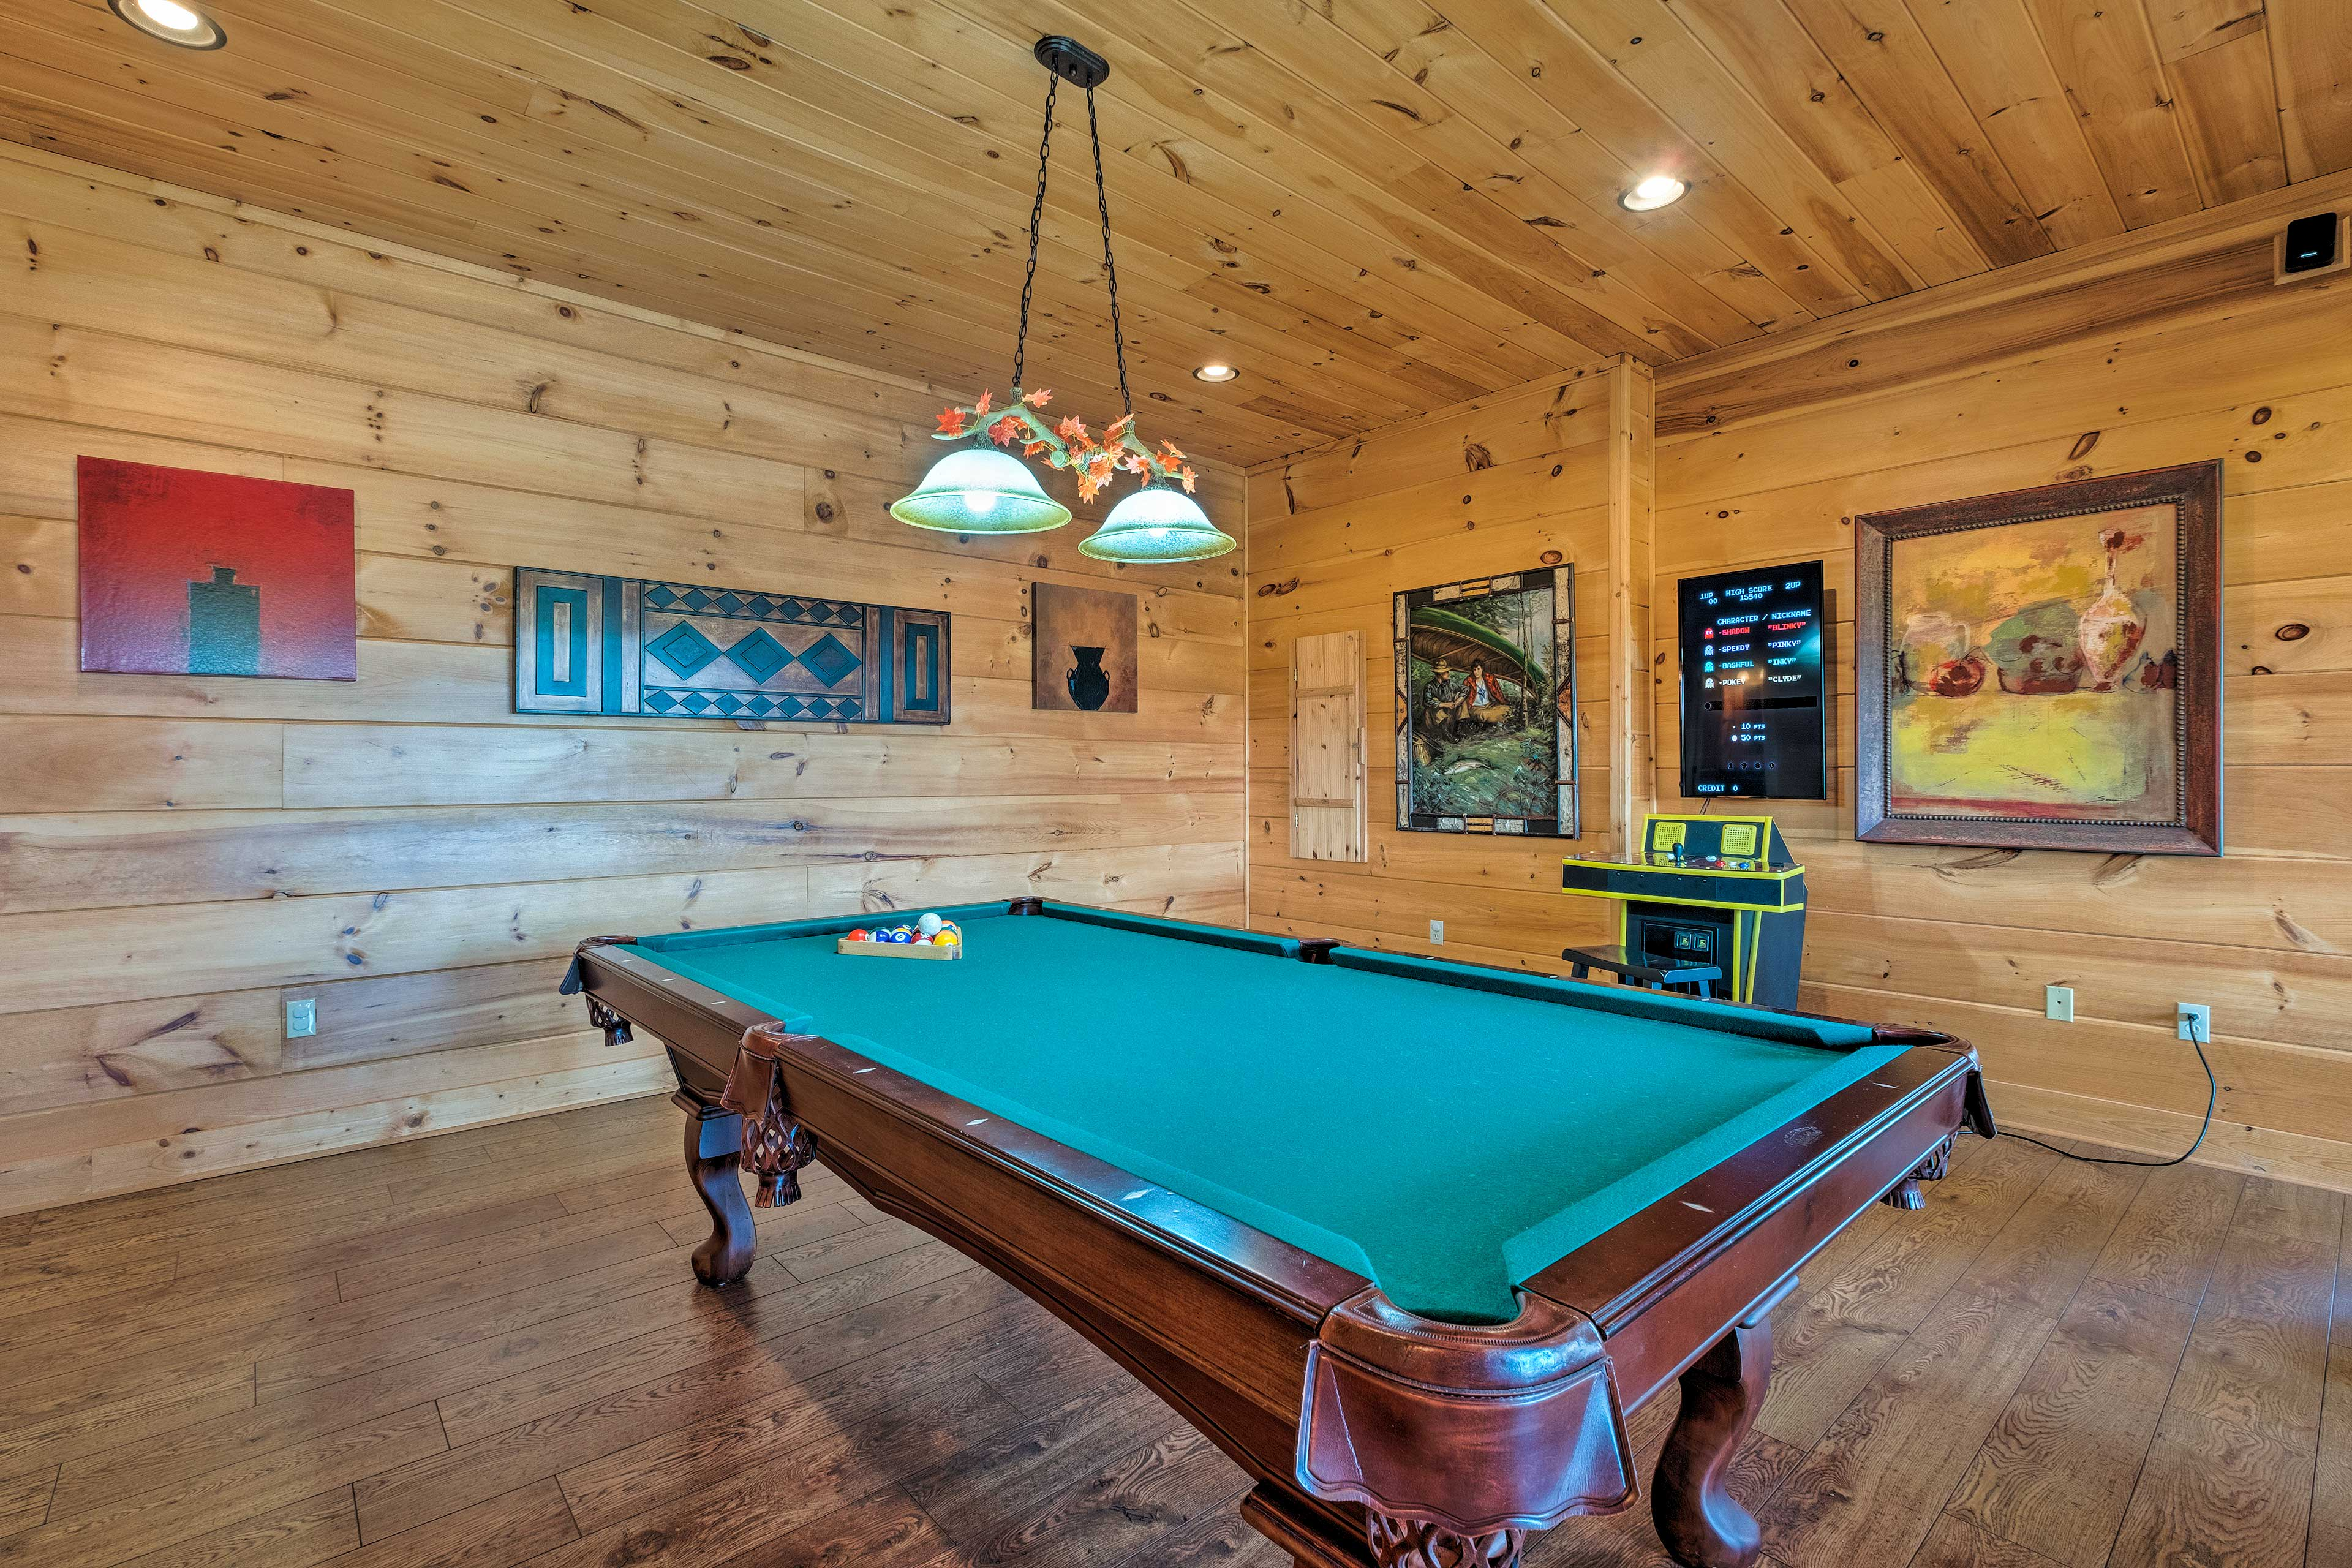 Rack up a game of pool and play 8-ball or cut throat.